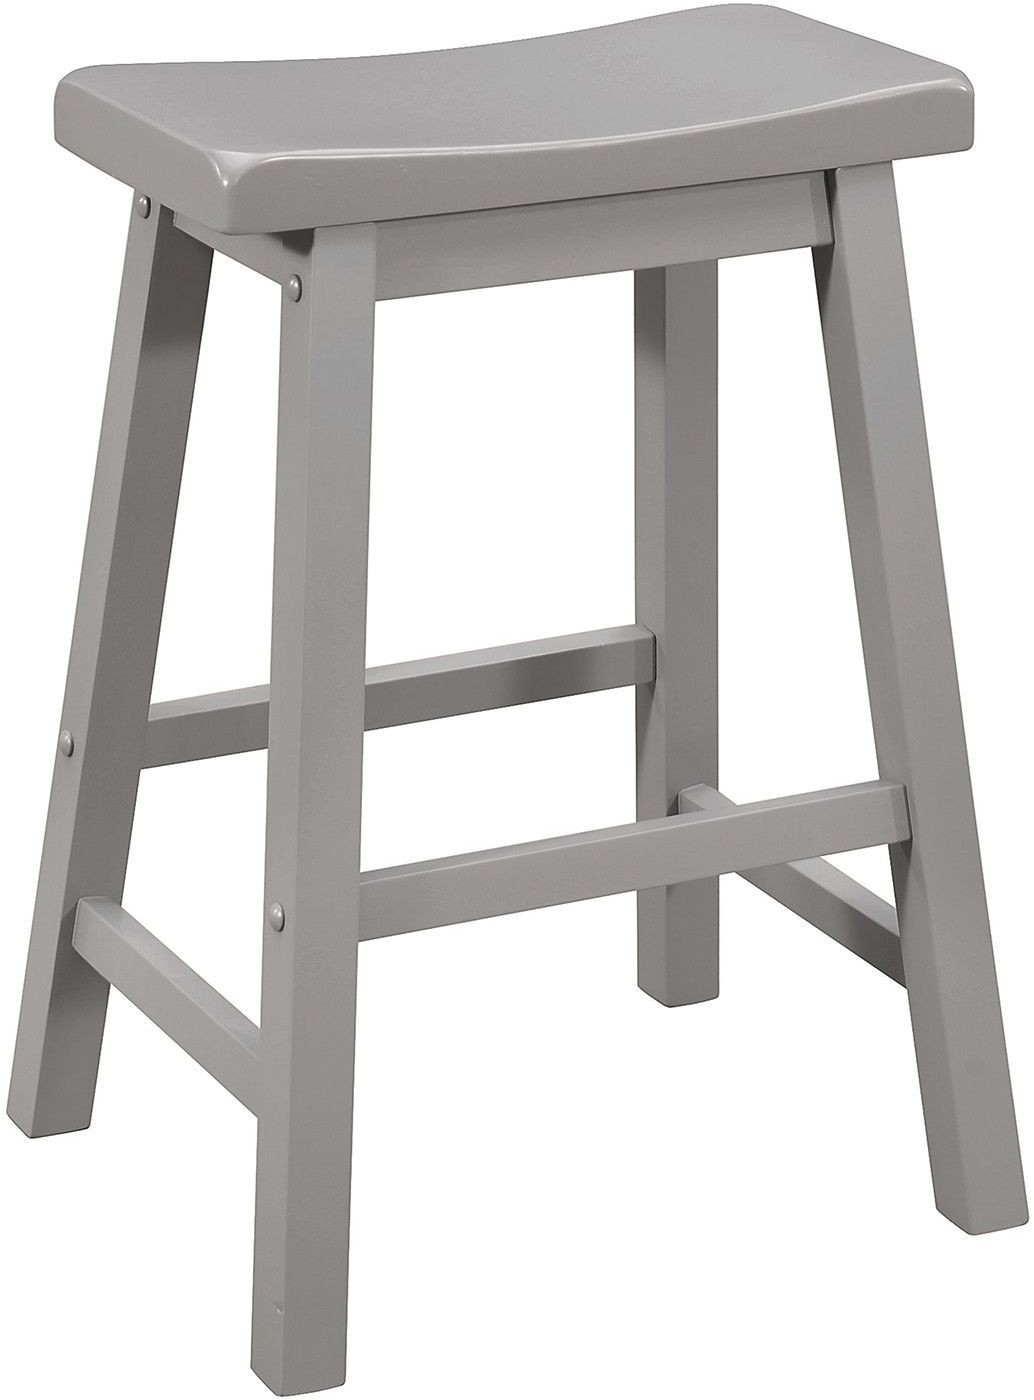 Gray Counter Height Stool Set of 2 from Coaster Coleman  : 1801781 from colemanfurniture.com size 1034 x 1400 jpeg 101kB